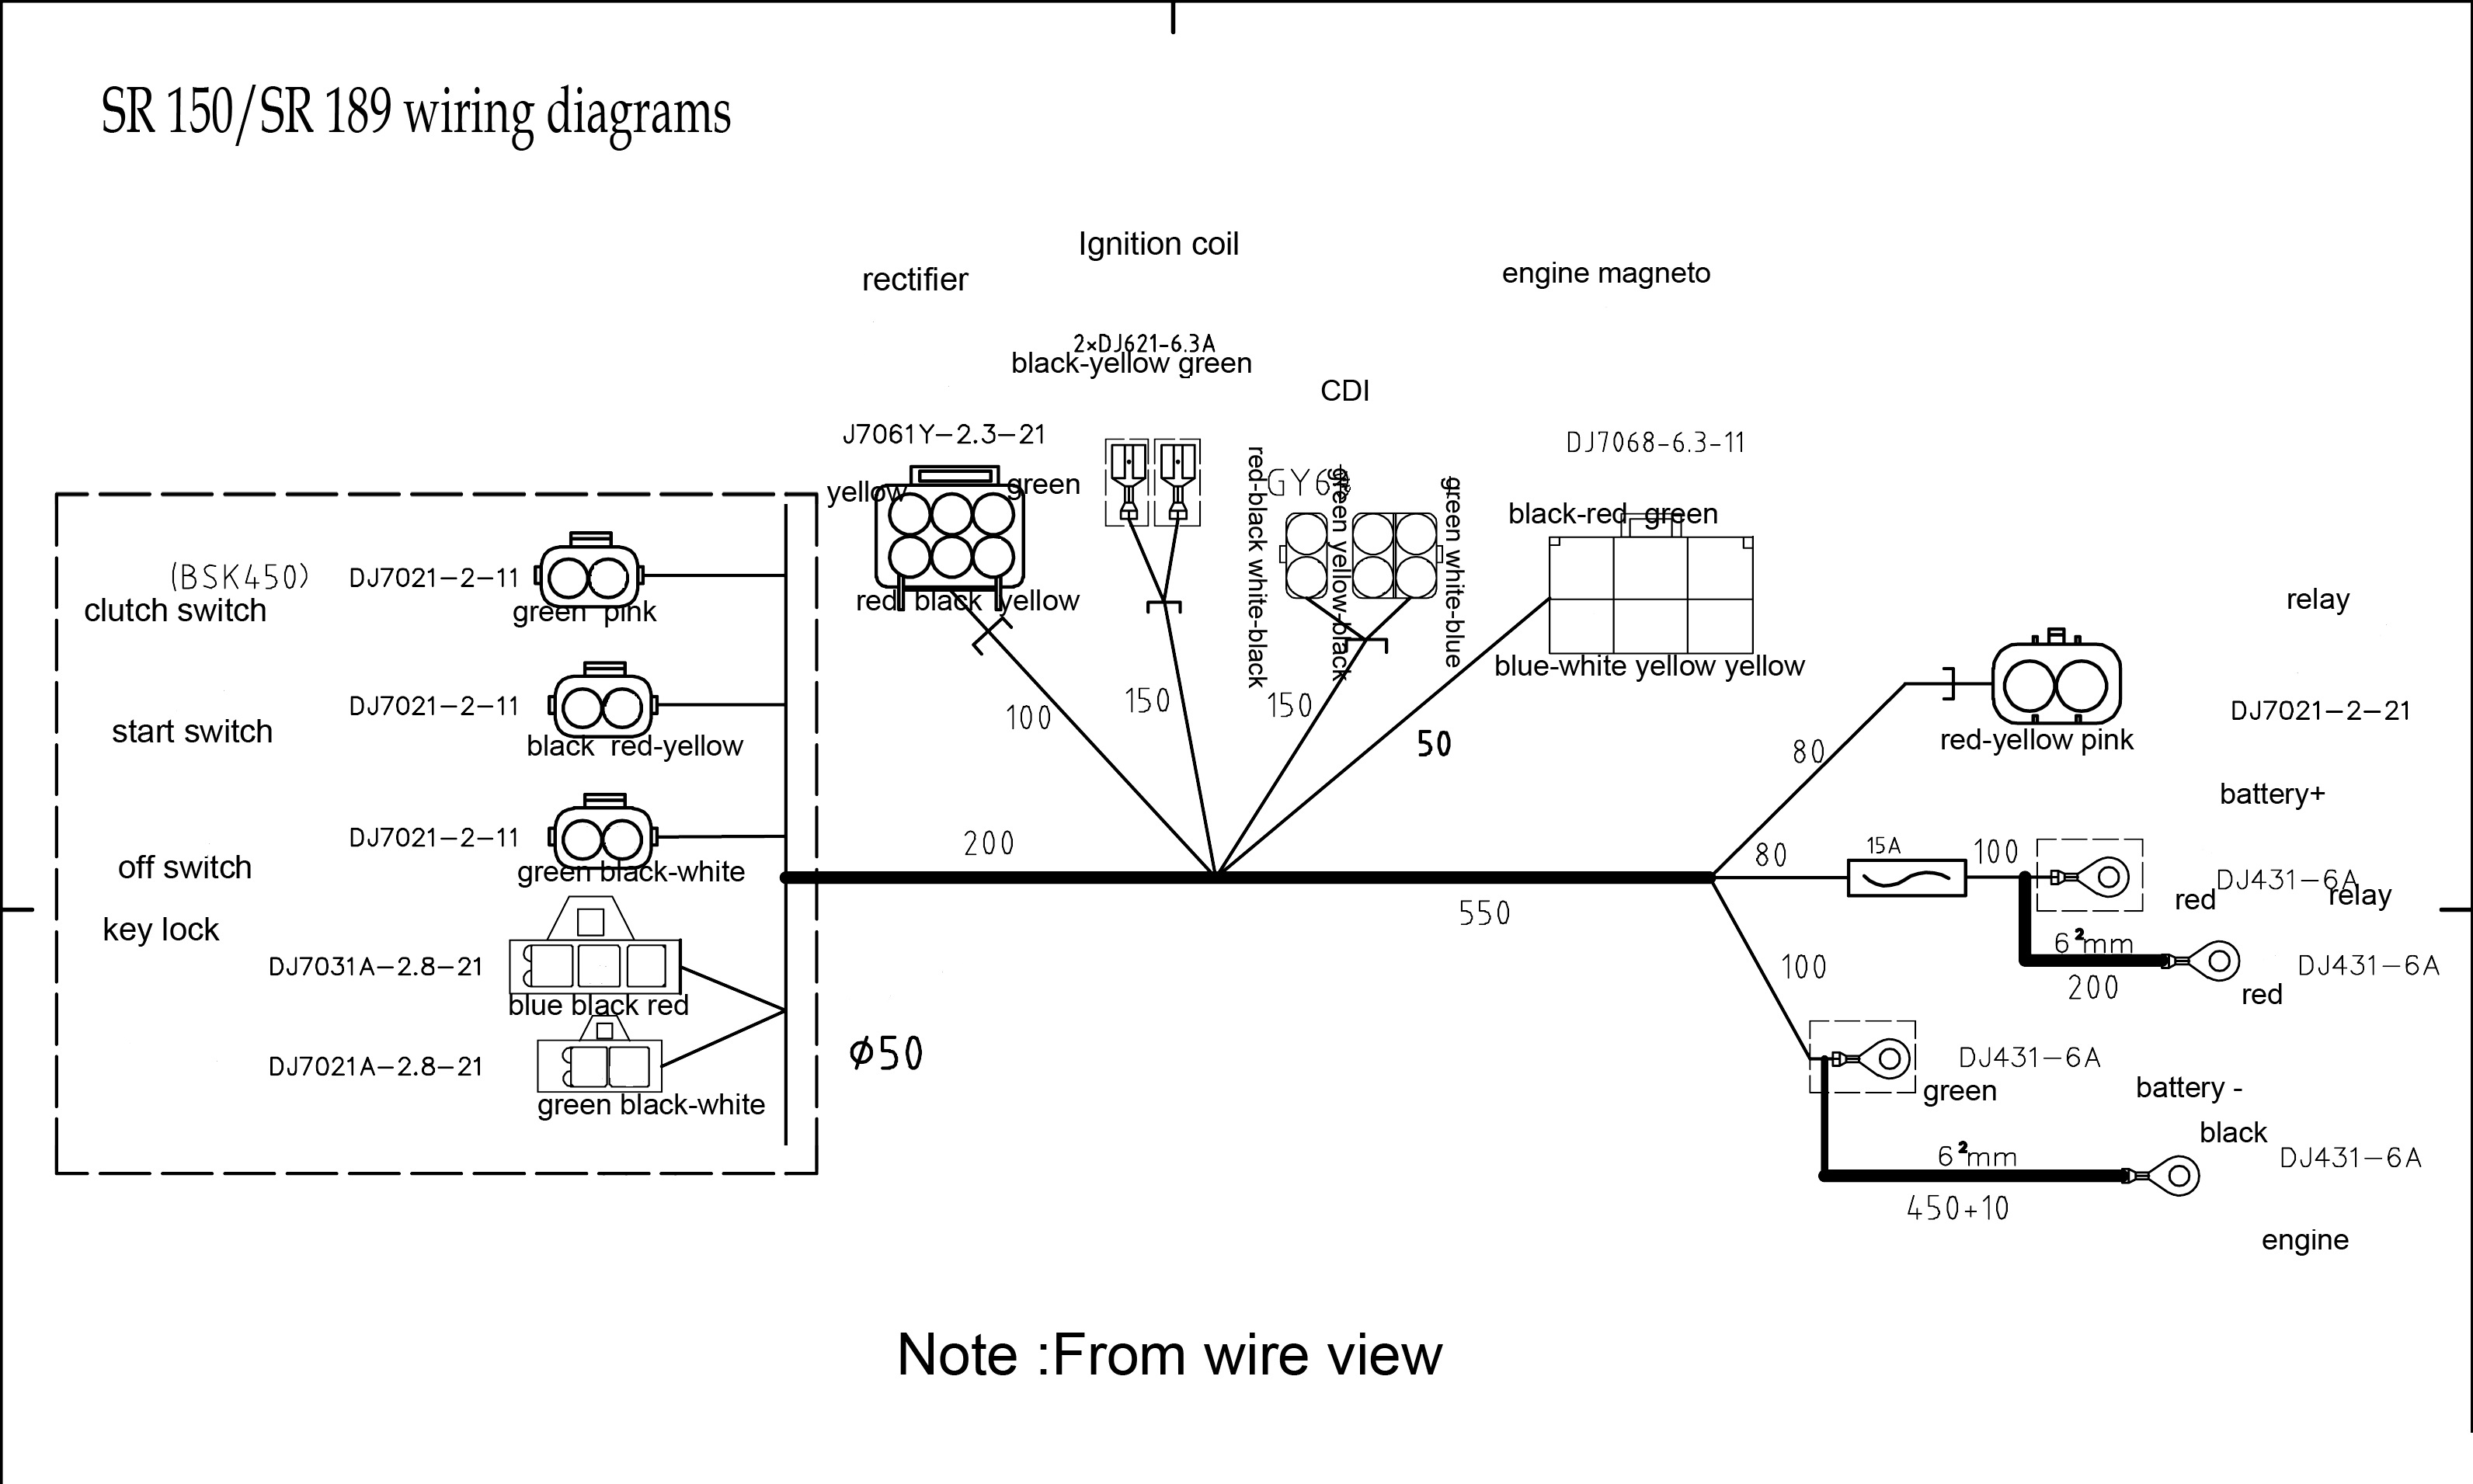 wire diagram rh ssrmotorsports com ssr 110 pit bike wiring diagram